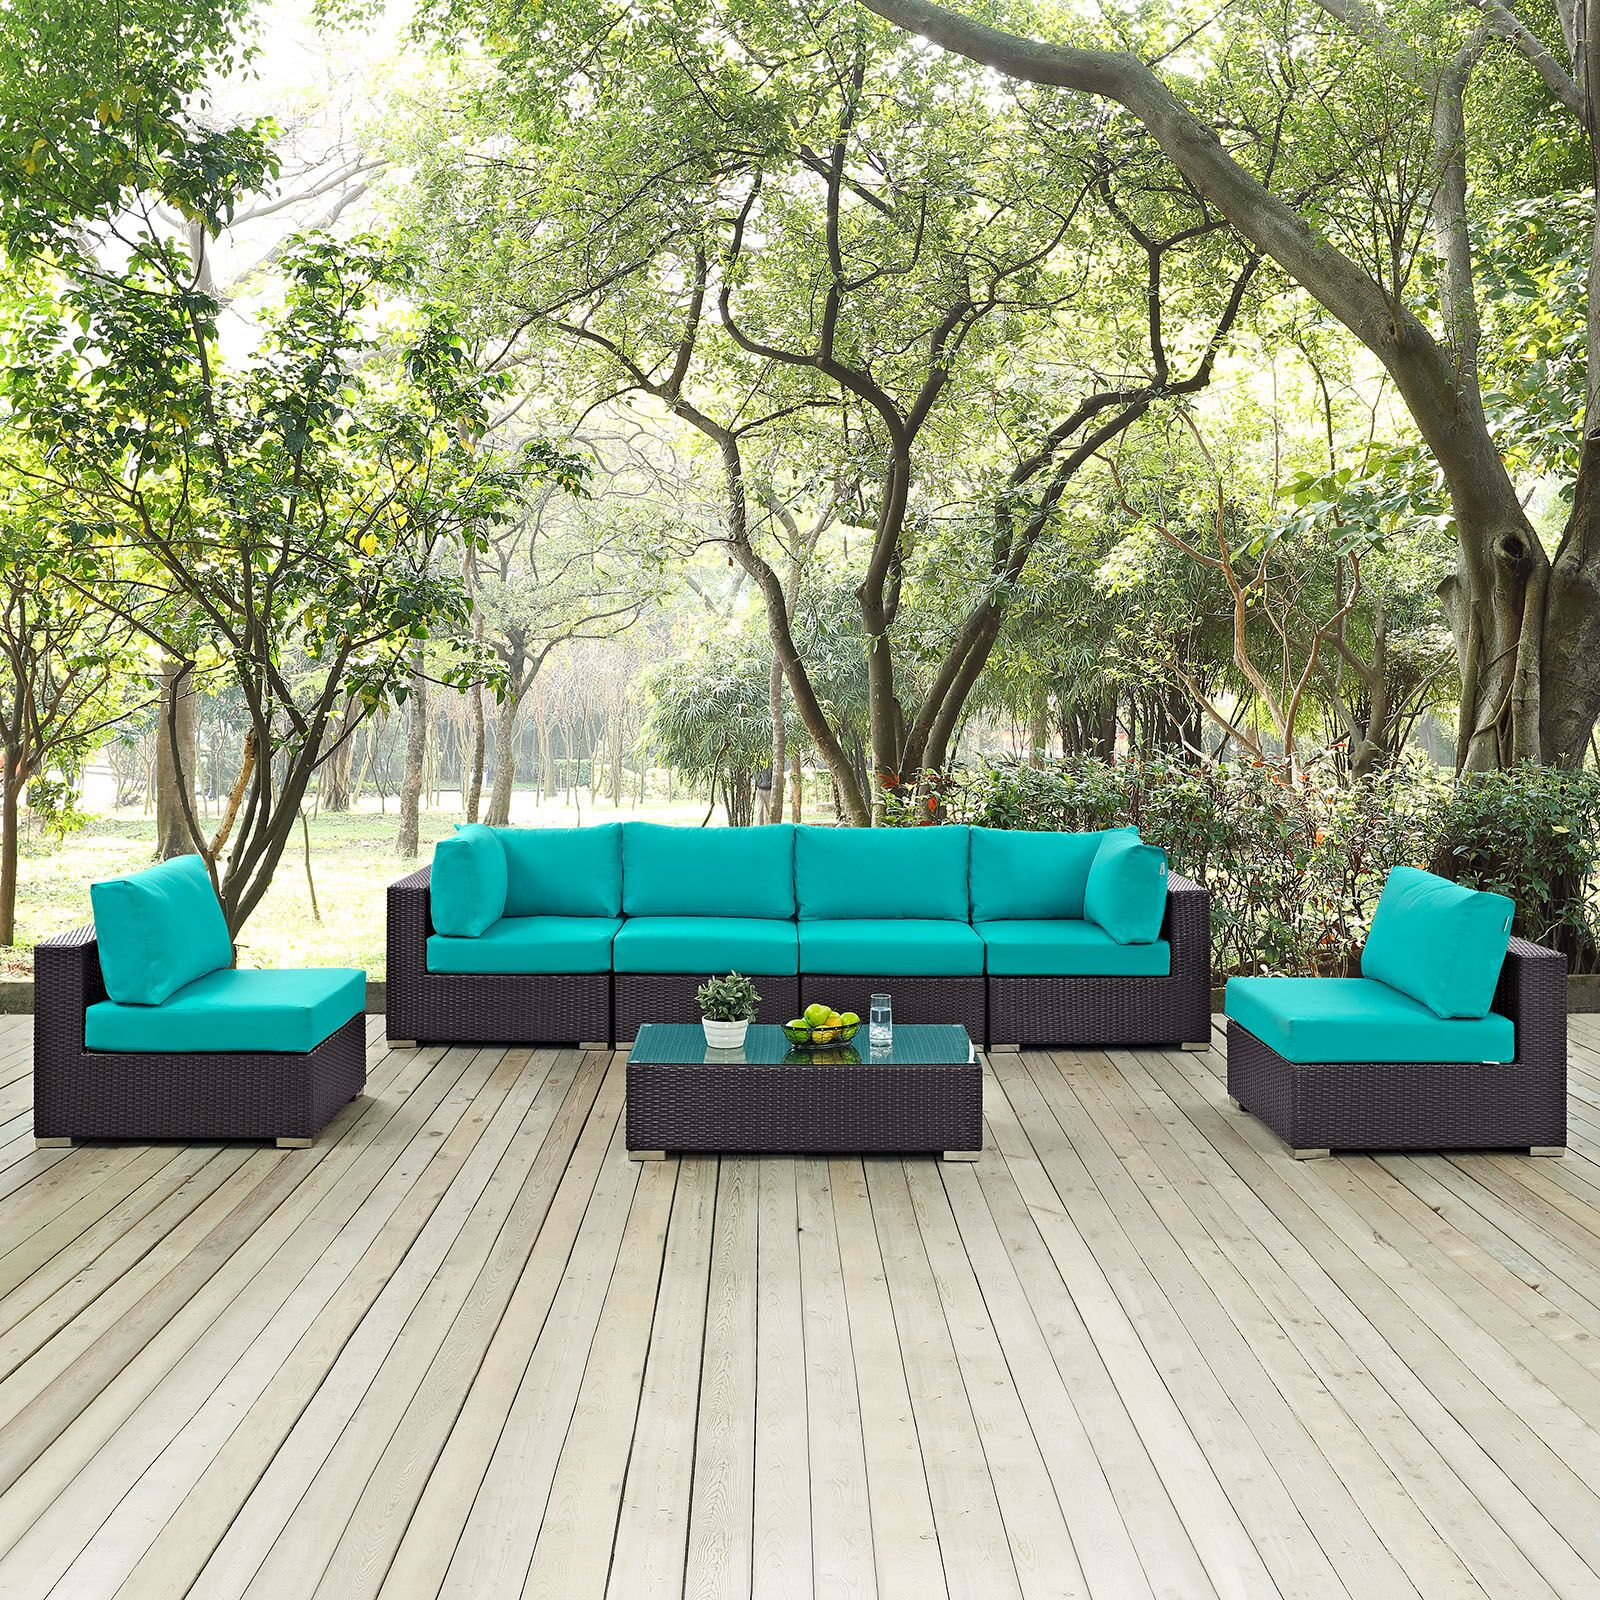 Ryele 7 Piece Rattan Sectional Set with Cushions Fabric: Turquoise